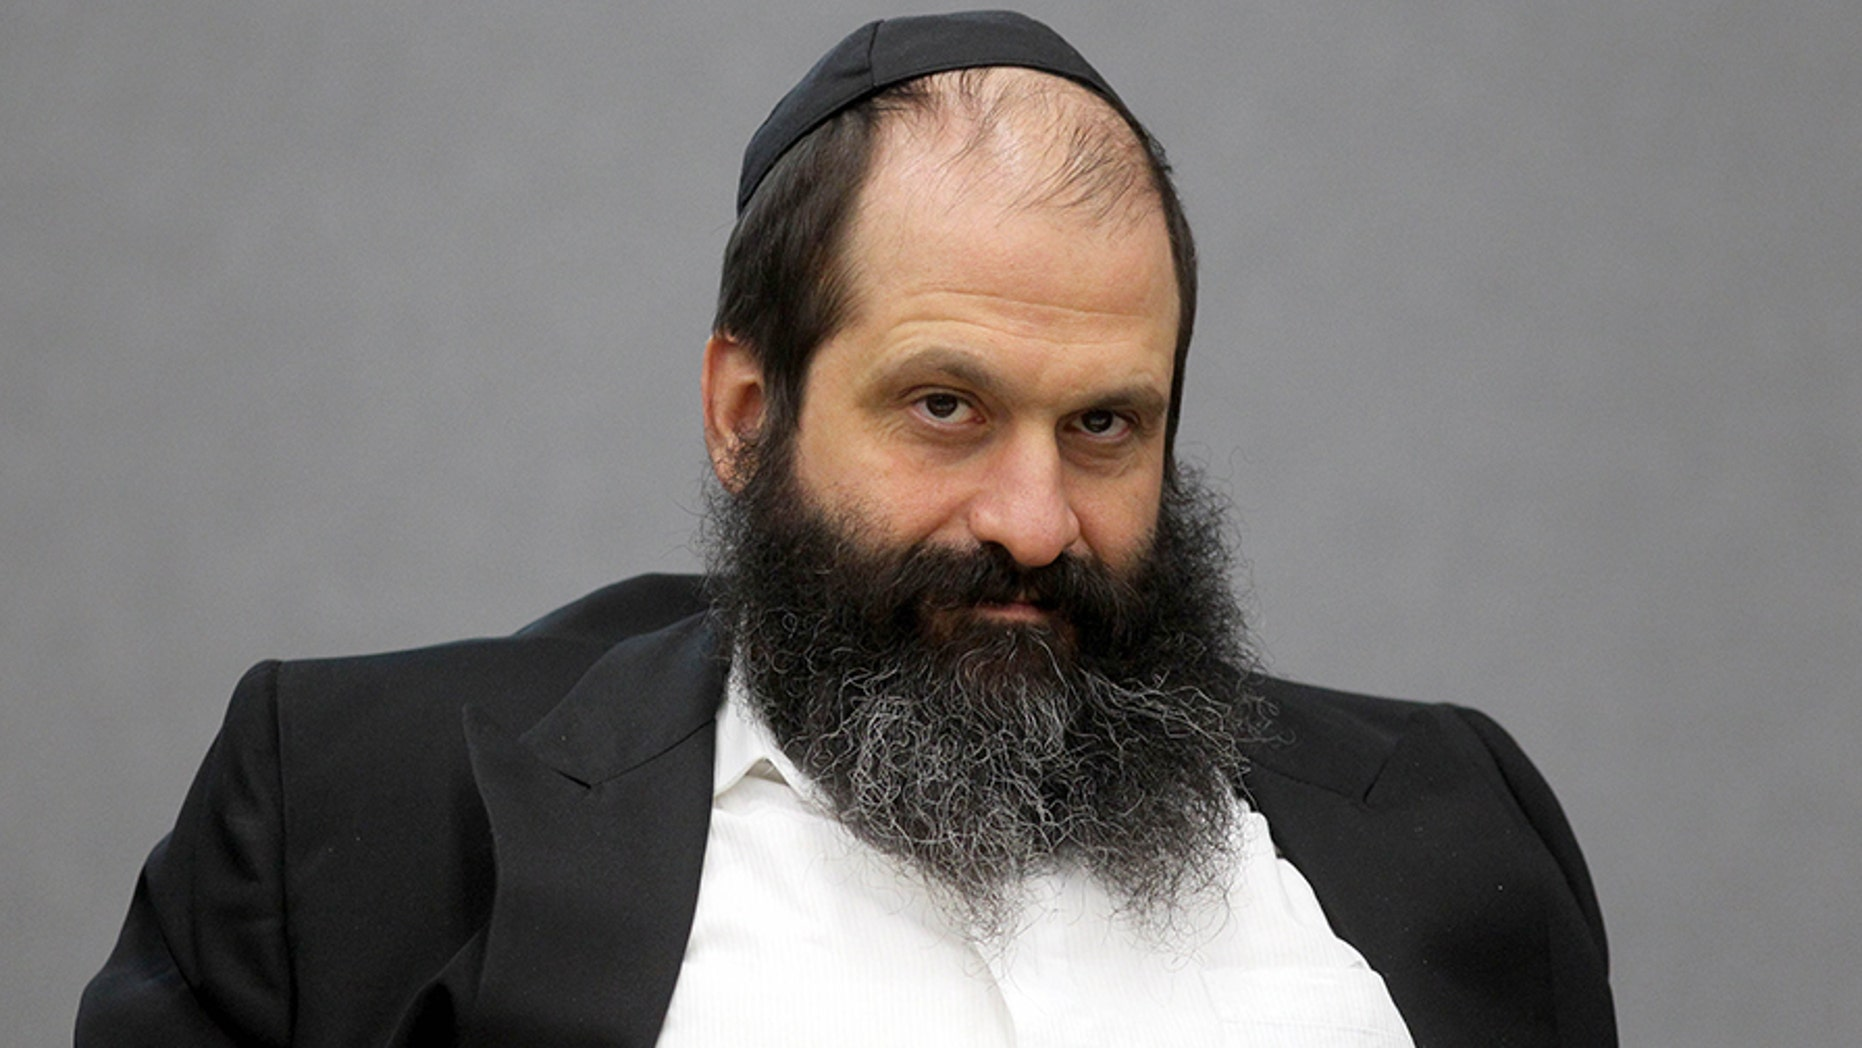 Sholom Rubashkin was sentenced to 27 years in prison for money laundering.